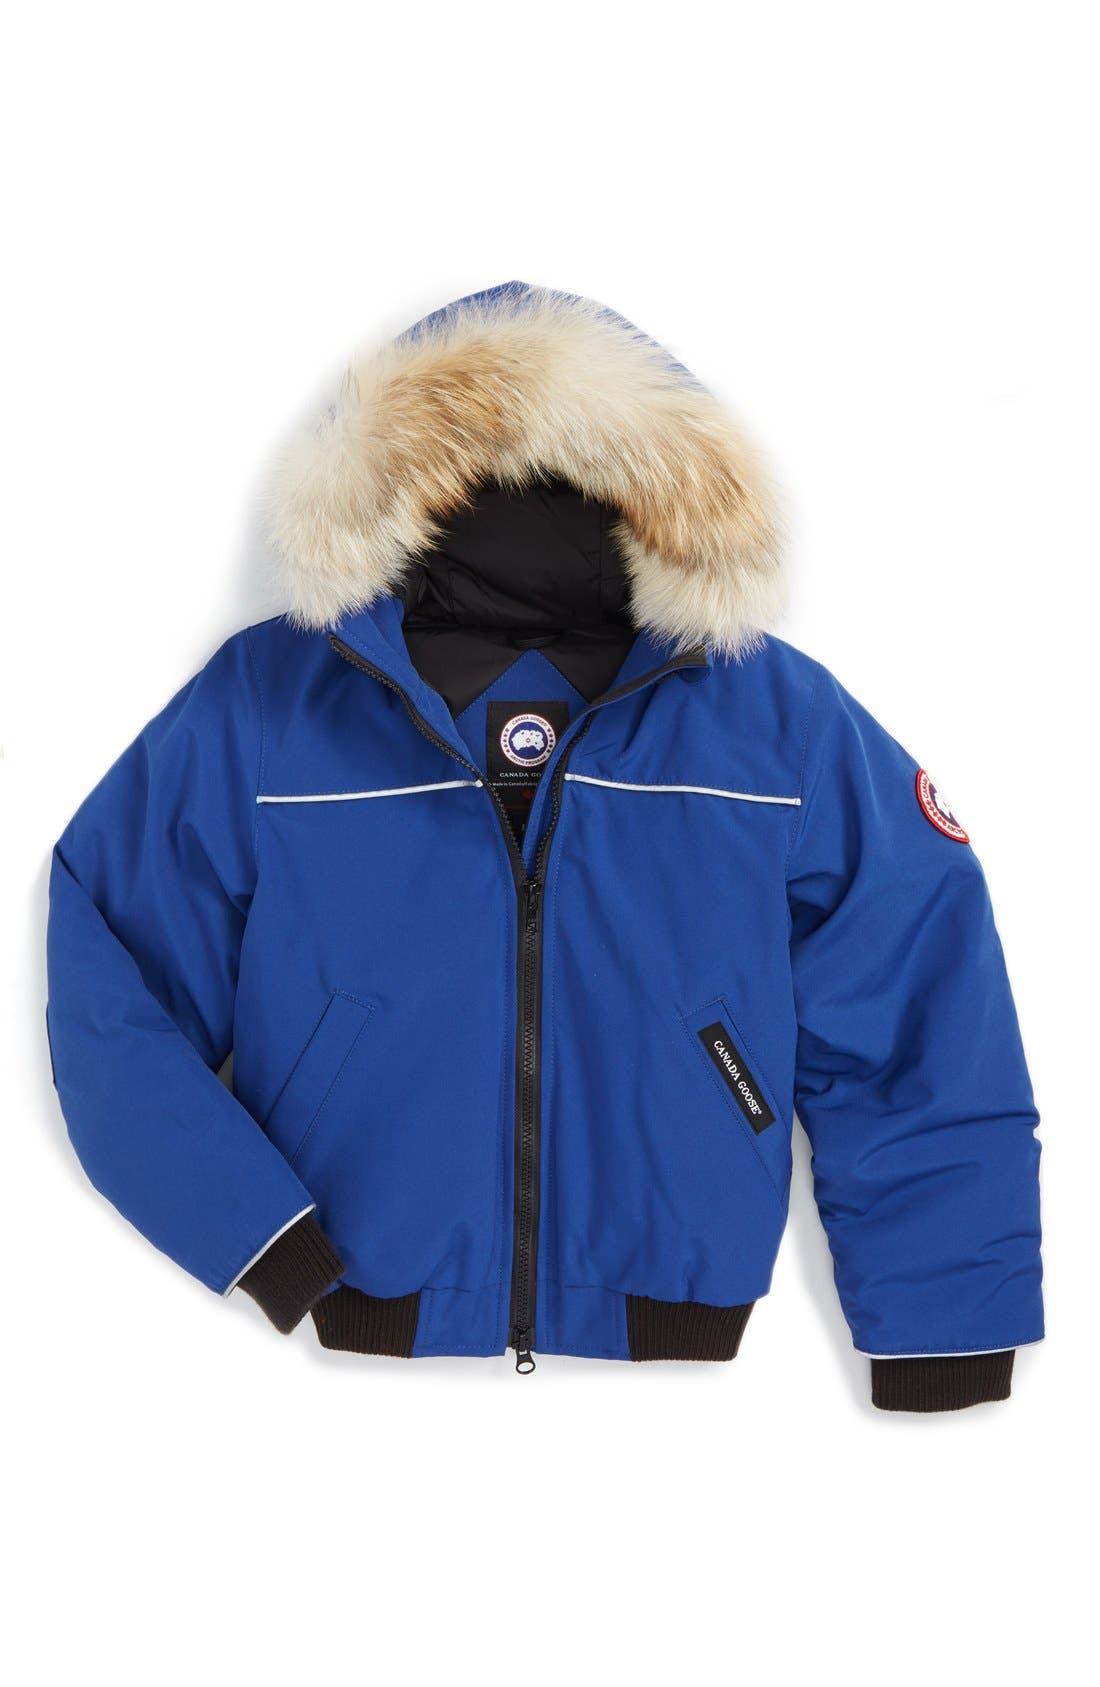 Canada Goose 'Grizzly' Down Hooded Bomber Jacket with Genuine Coyote Fur Trim (Little Kids)